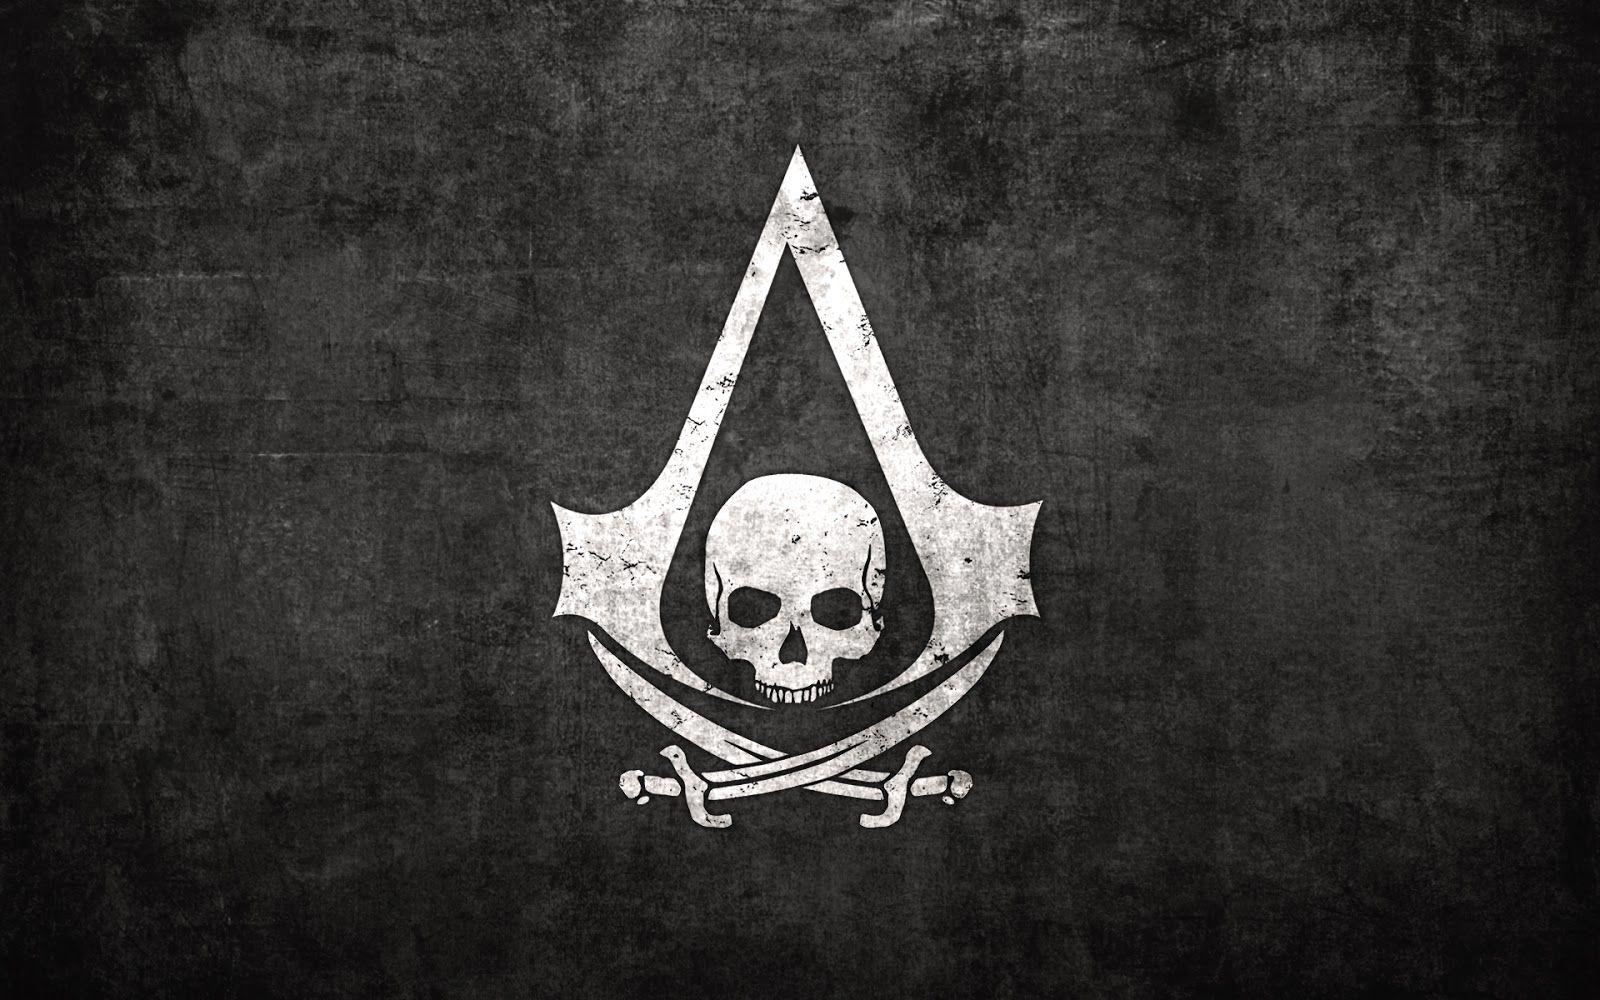 Assassins creed unity symbol wallpapers wallpaper cave assassins creed symbol wallpaper biocorpaavc Images